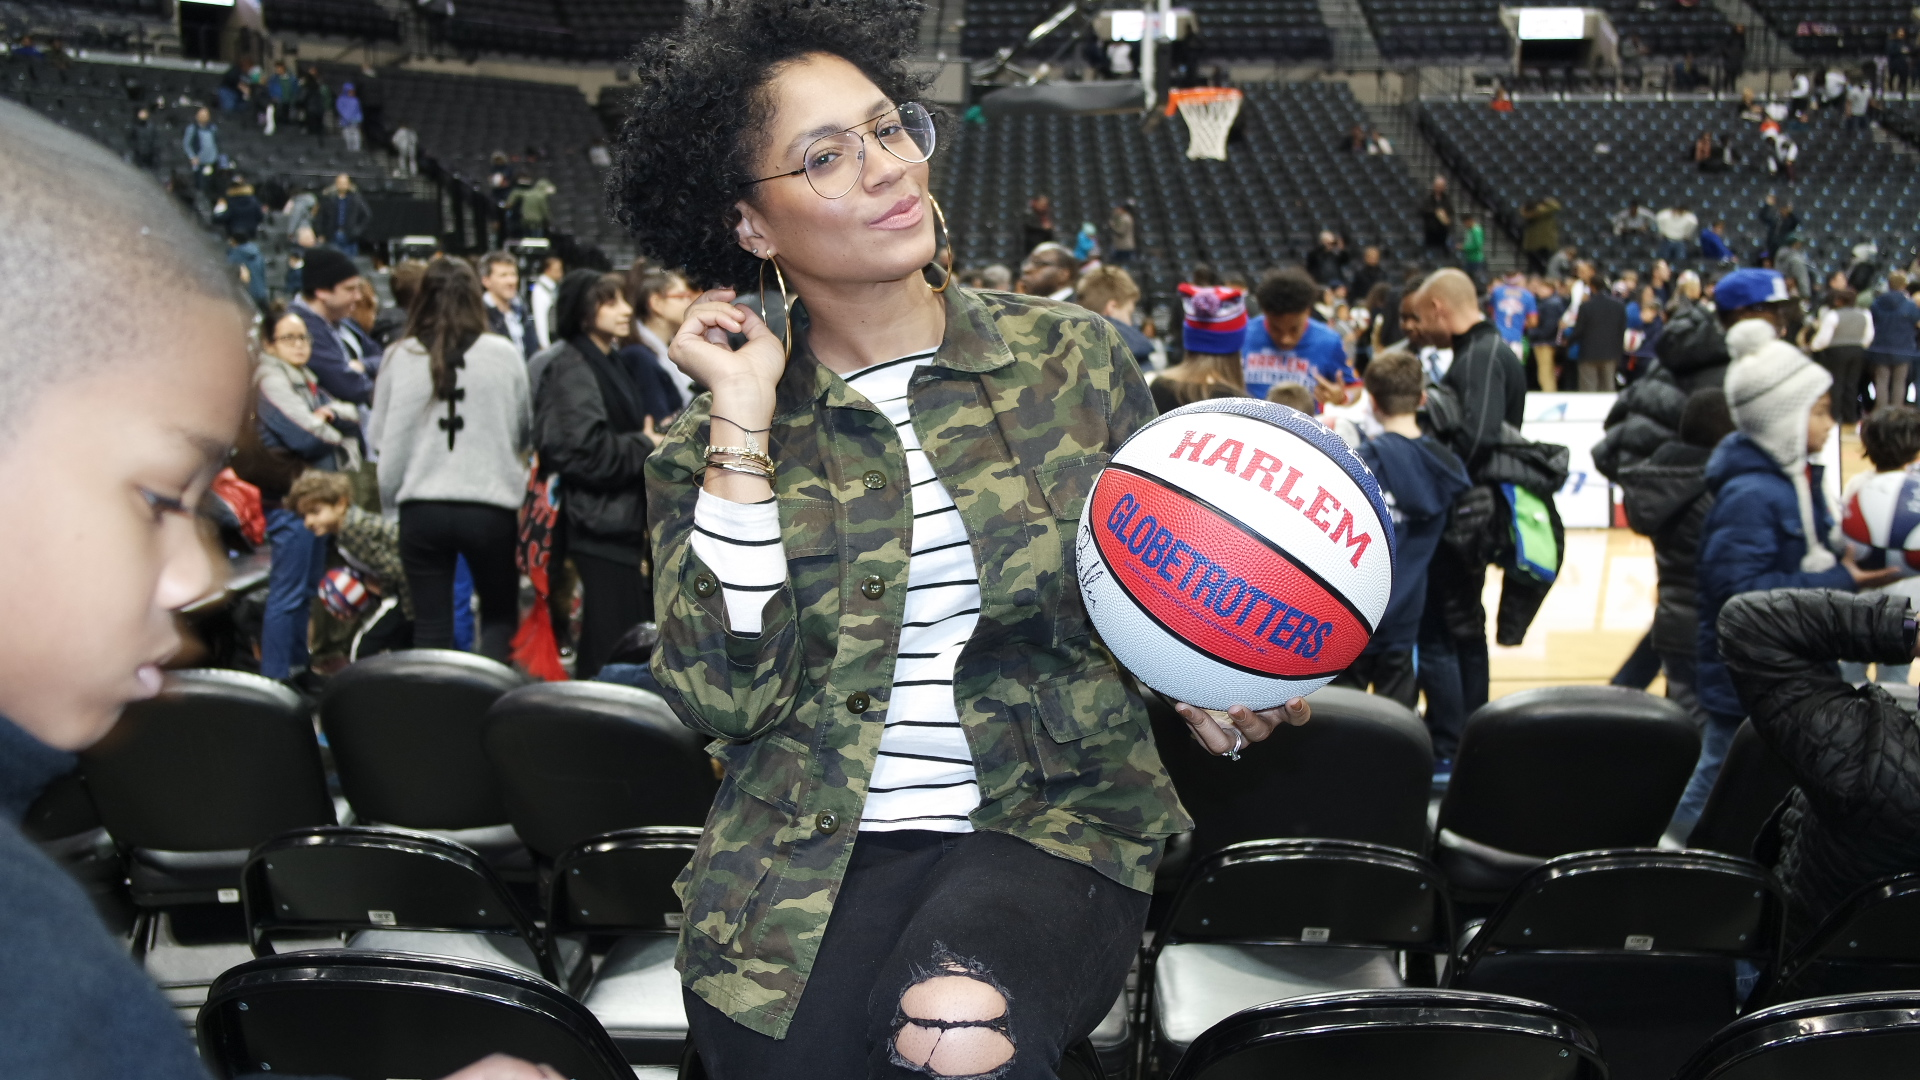 Harlem Globetrotters At Barclays Center